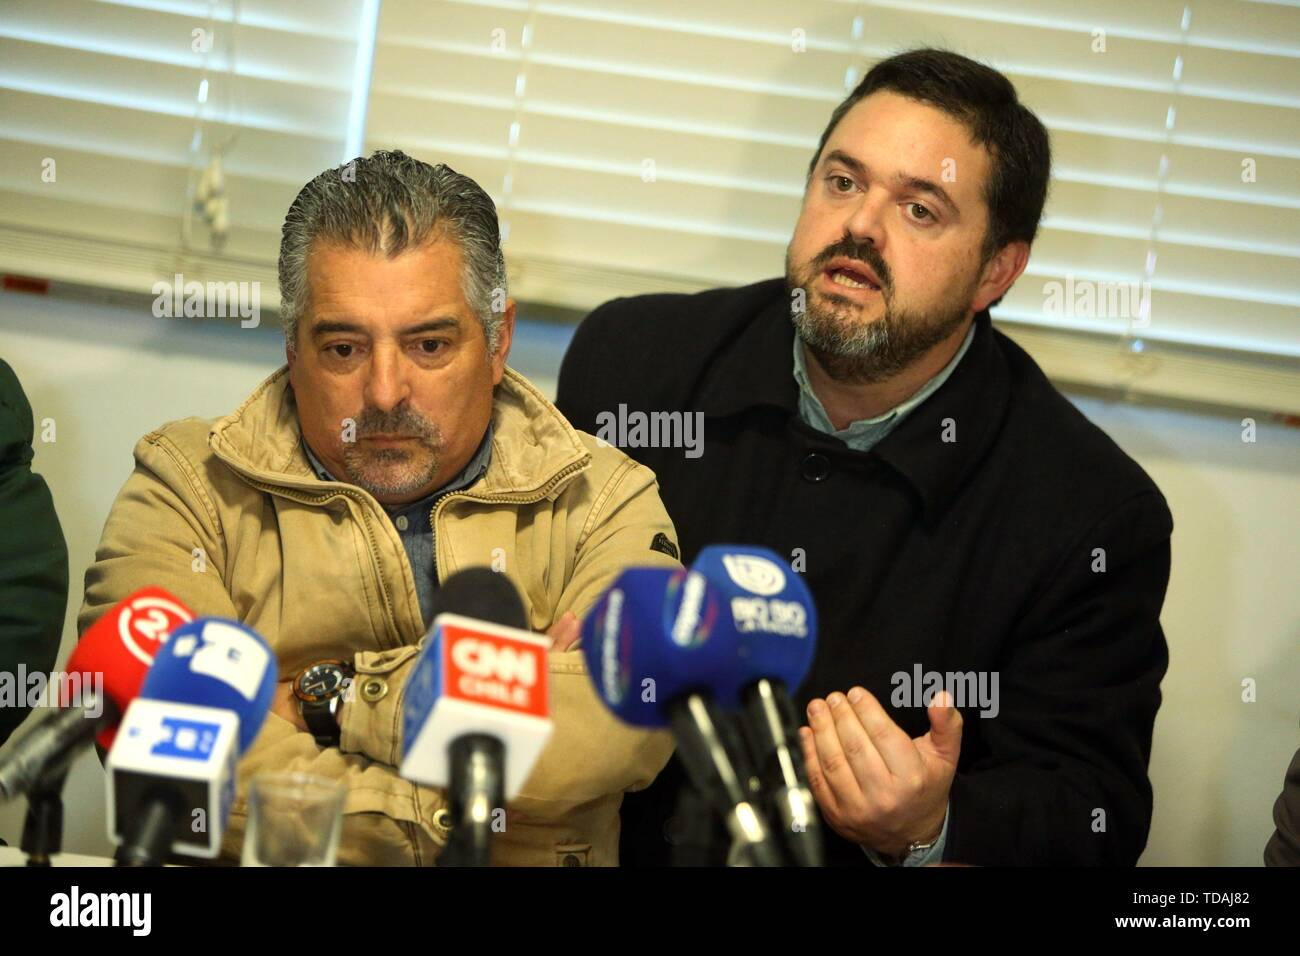 Santiago, Chile. 14th June, 2019. Plaintiff Marcelo Soto, former seminarian of the Valaparaiso diocese, delivers a press conference, in Santiago, Chile, 14 June 2019, to explain the details of the lawsuit against all the authors, accomplices and accessories of the abuses committed inside the institution. Credit: Alberto Pena/EFE/Alamy Live News - Stock Image